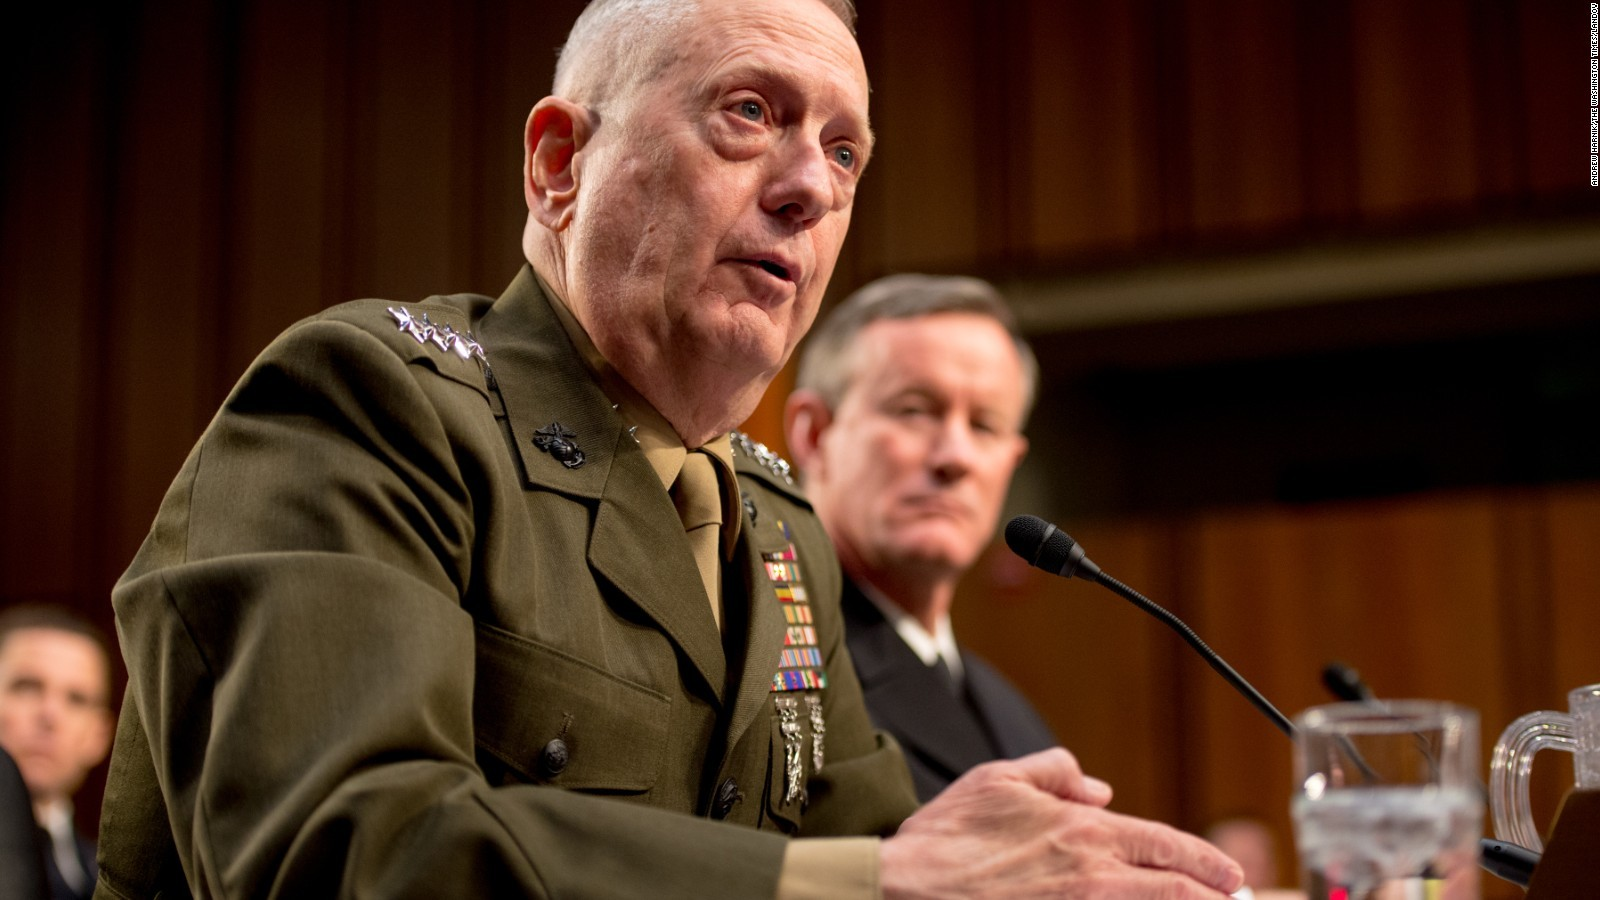 http://www.oltrelalinea.news/wp-content/uploads/2018/02/130305150918-james-mattis-1-full-169.jpg